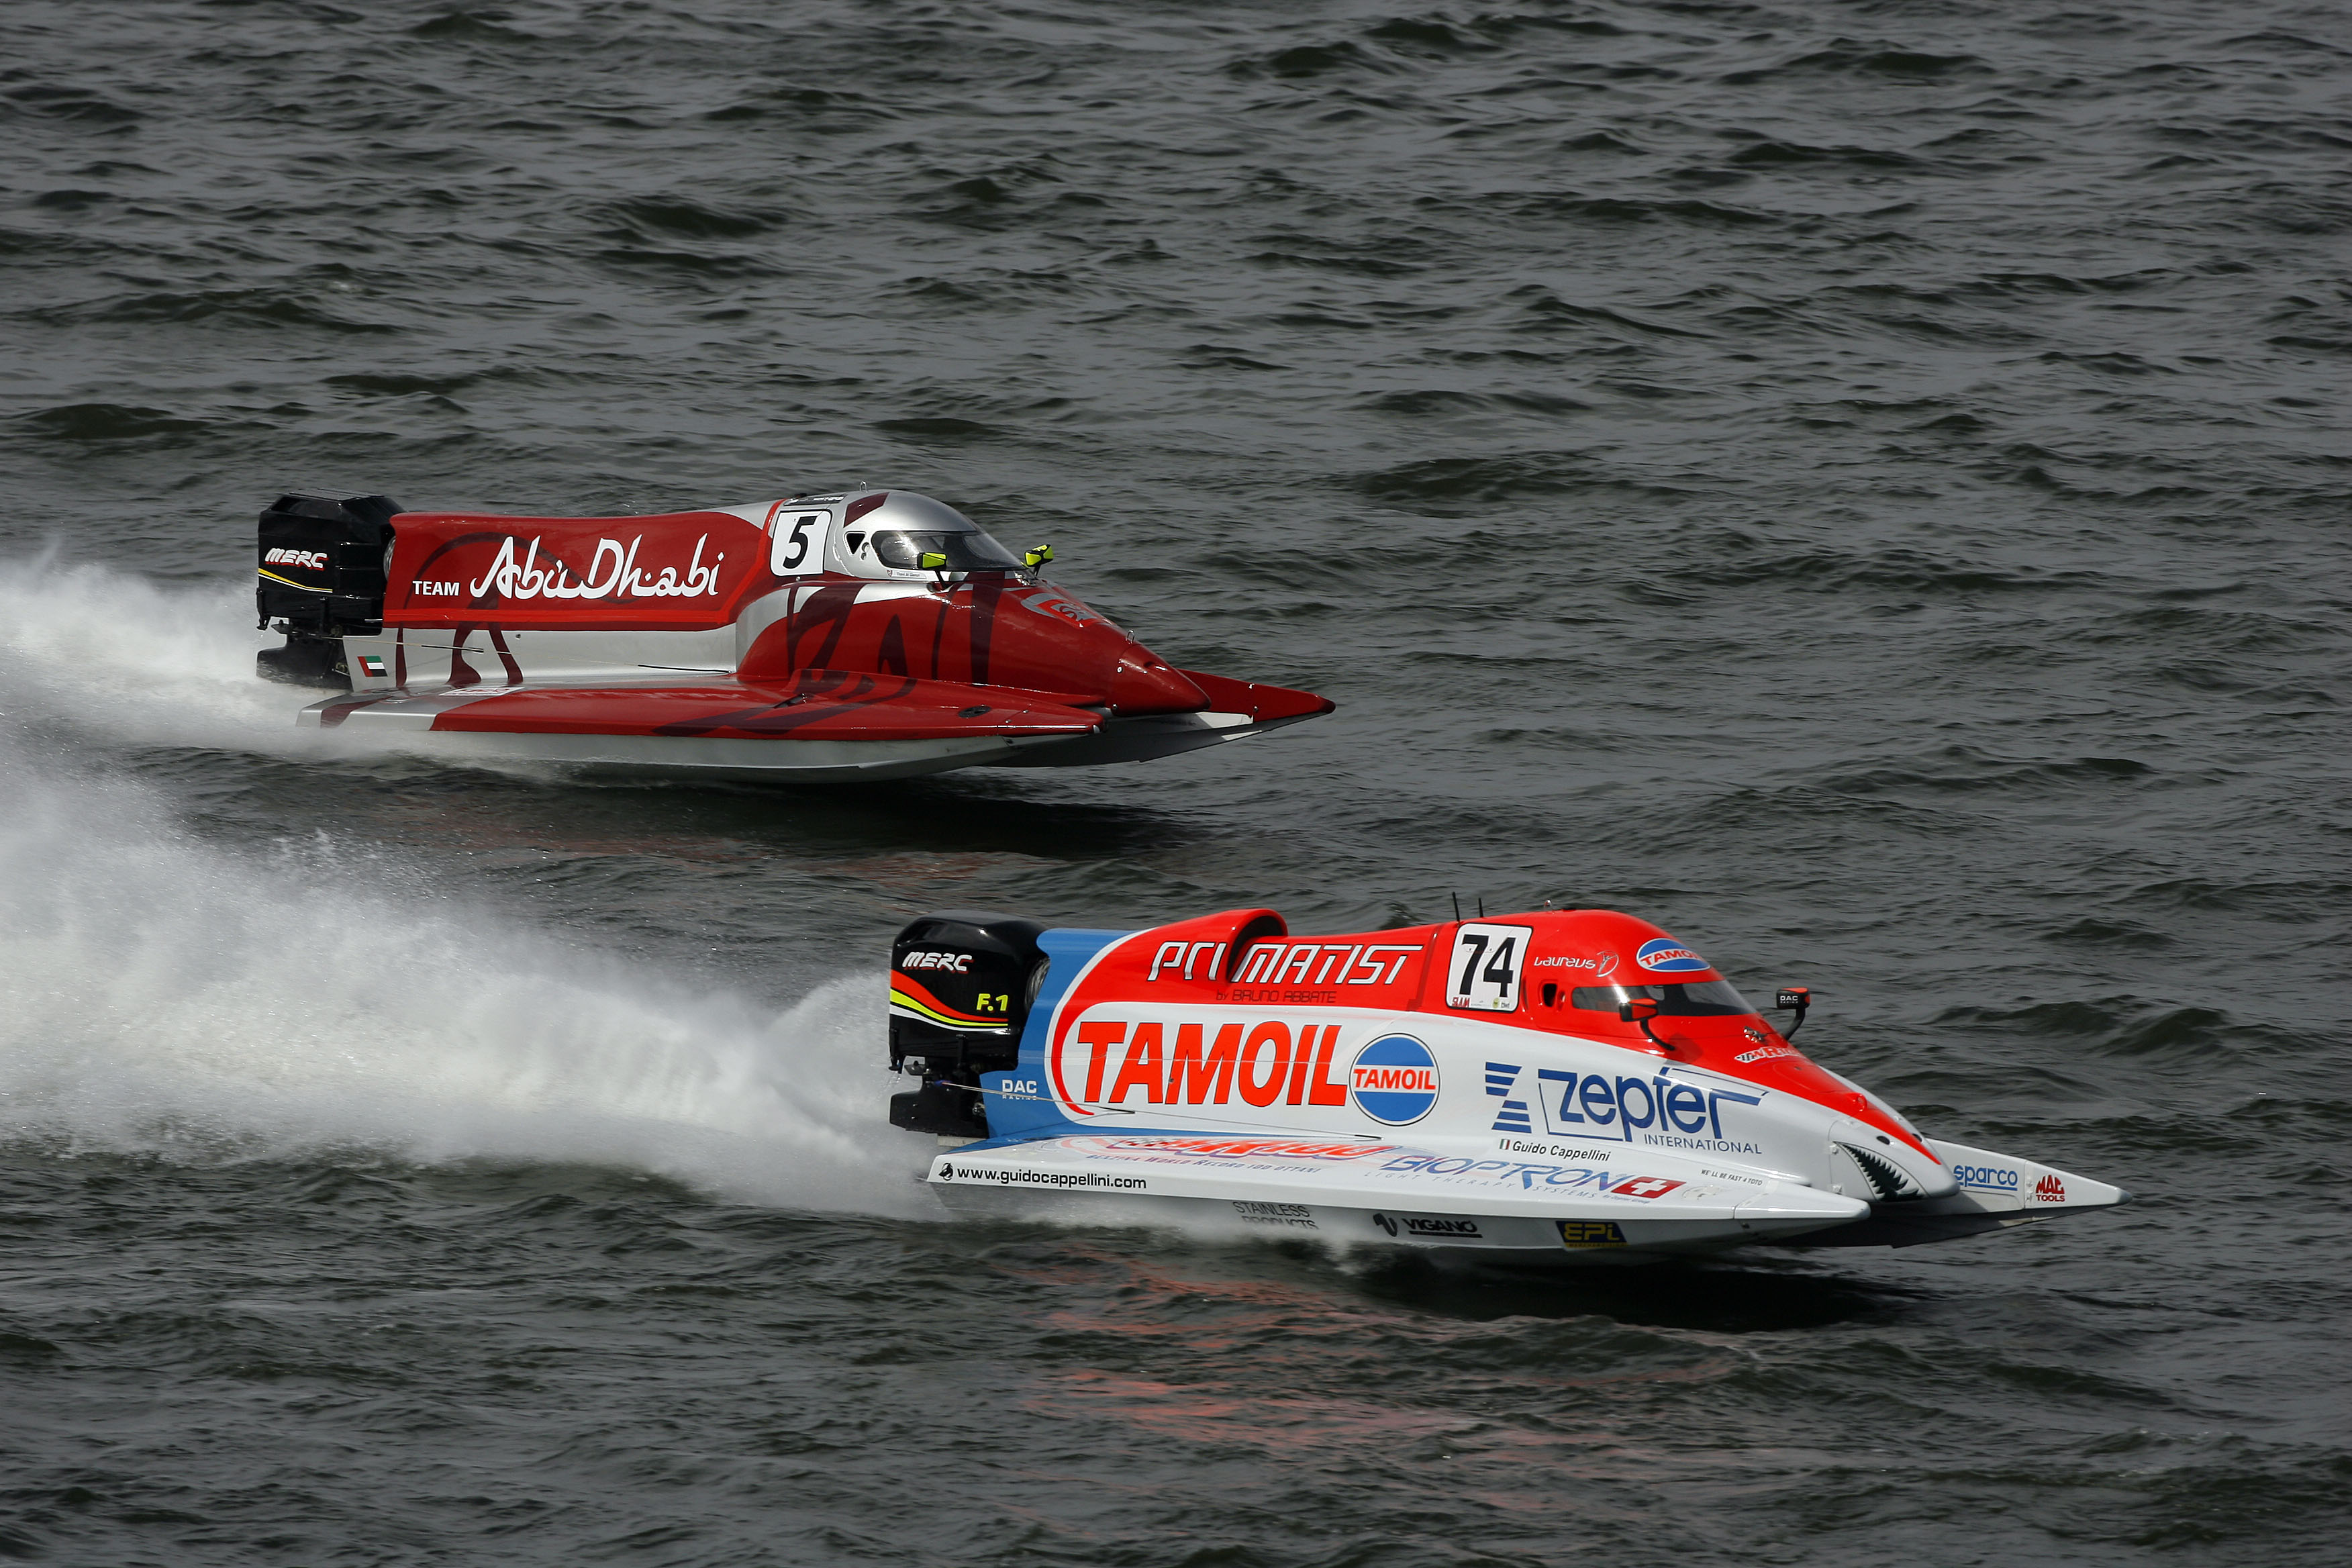 080608-GP OF FINLAND-Race winner Guido Cappellini of Italy of the Tamoil team and Al Qamzi Thani of UAE of the Team Abu Dhabi during the UIM F1 powerboat at the Grand Prix of Finland on Lake Lahti, June 8, 2008. Picture by Paul Lakatos/Idea Marketing.